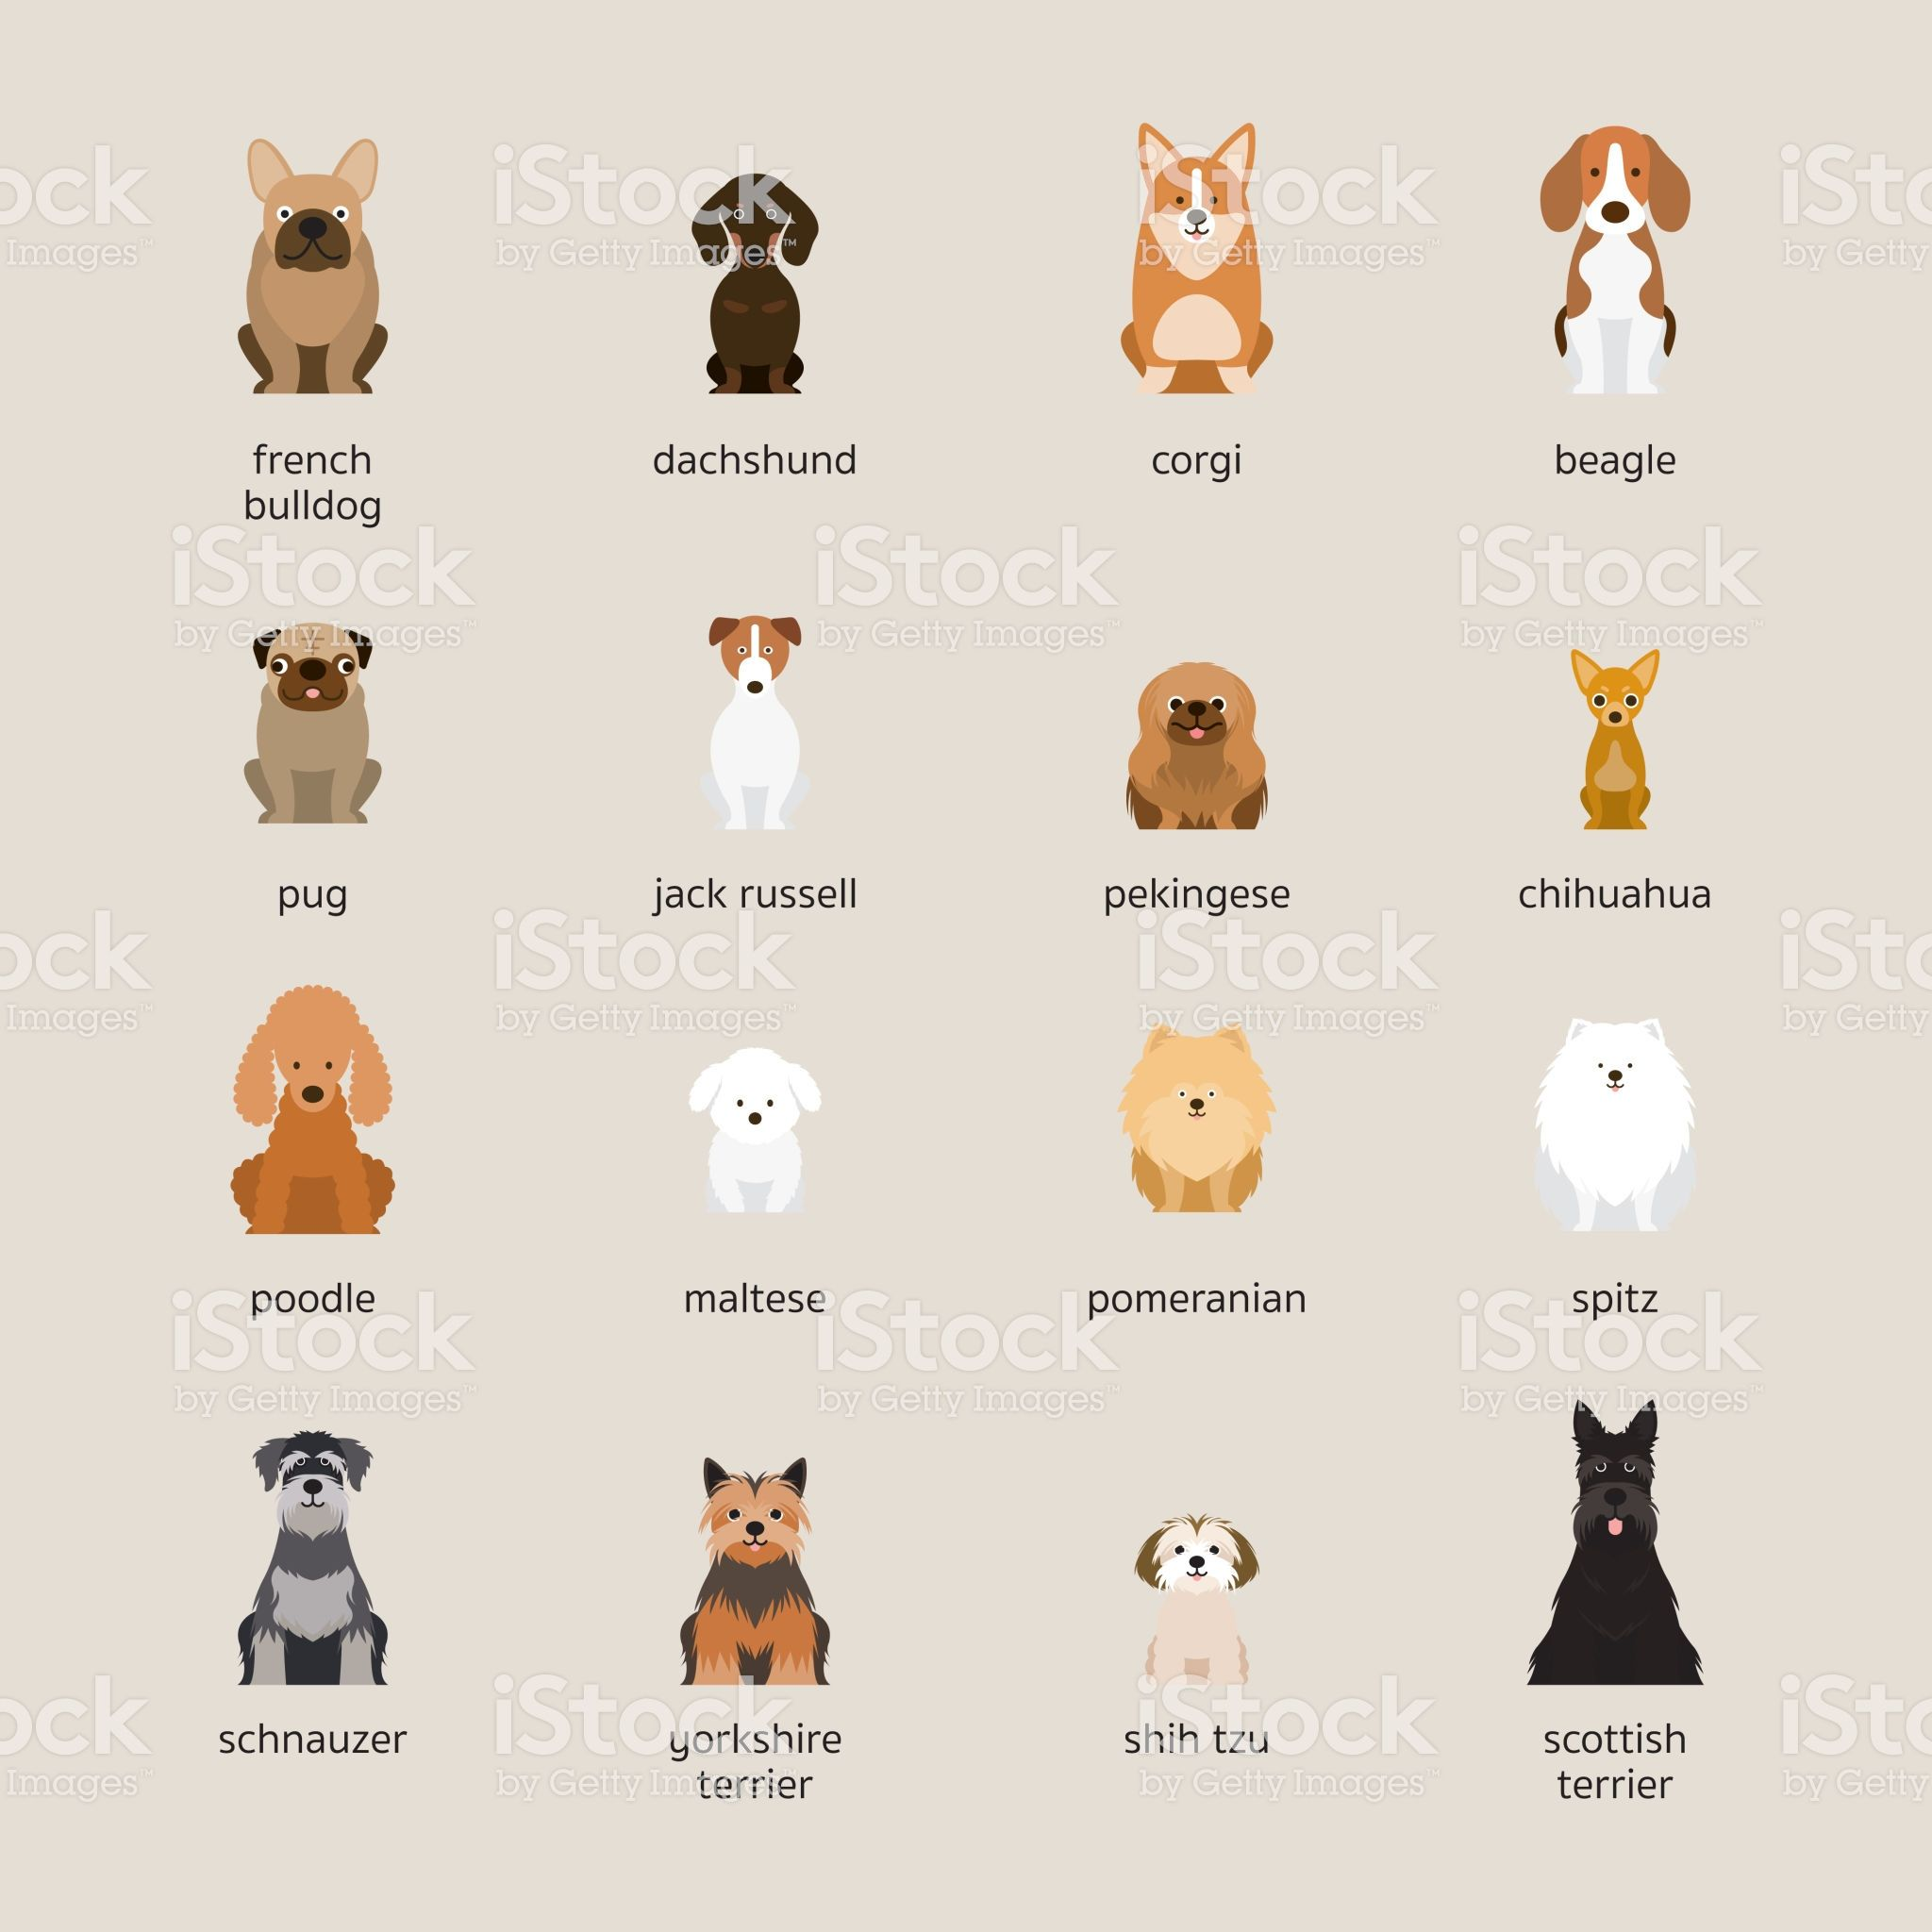 Dog Breeds Set Small And Medium Size Royalty Free Dog Breeds Set Small And Medium Size Stock Vector Art More Images Dog Breeds Dog Breeds Medium Medium Dogs